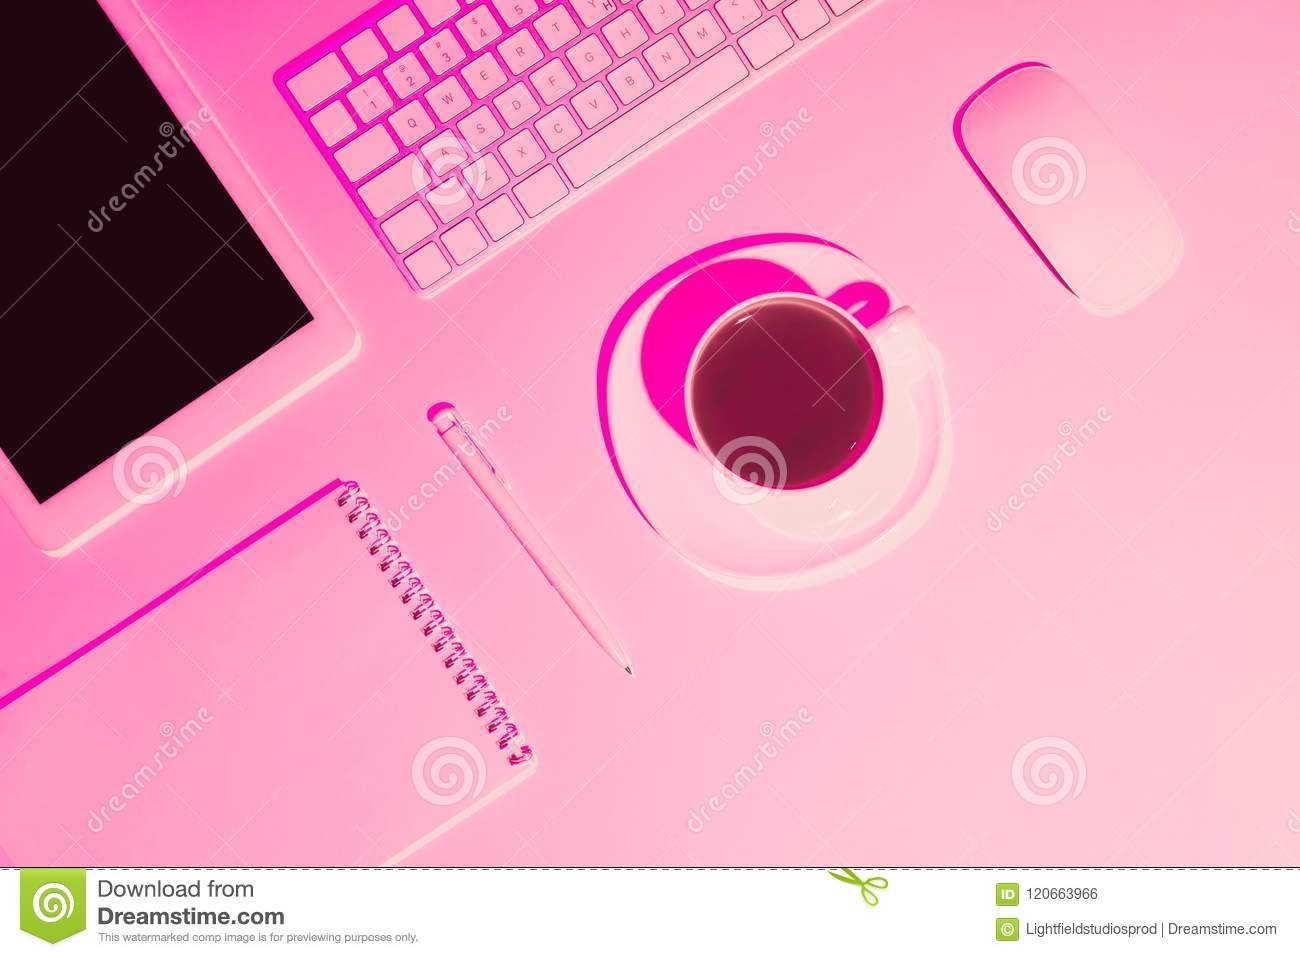 Pink Toned Picture Of Coffee Cup, Digital Tablet, Pen